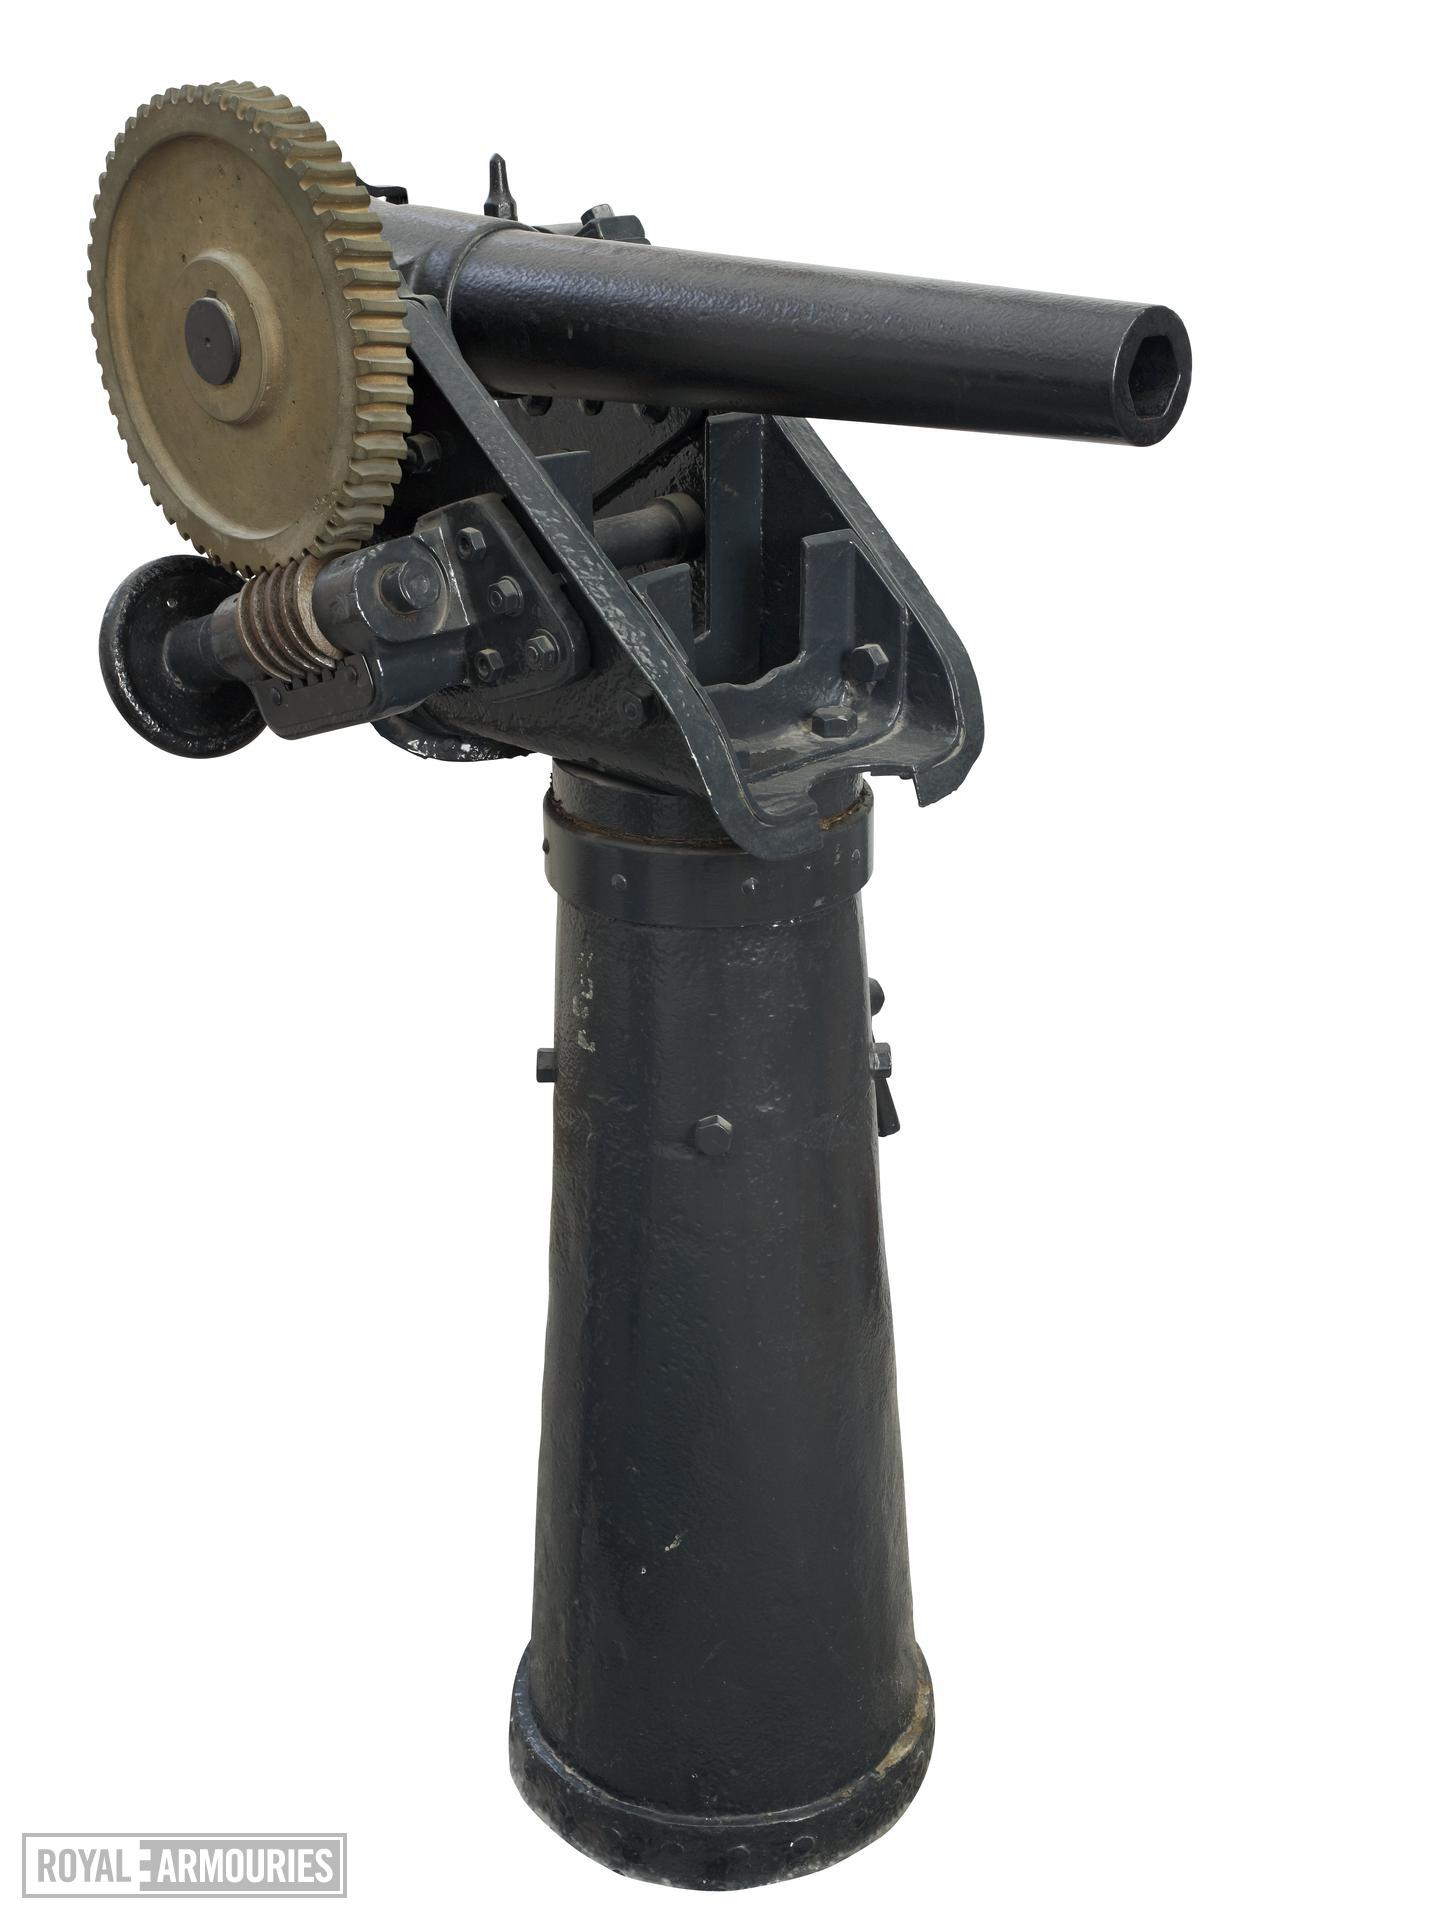 3 in boat gun and pedestal - Whitworth type Breech-loading Made of steel